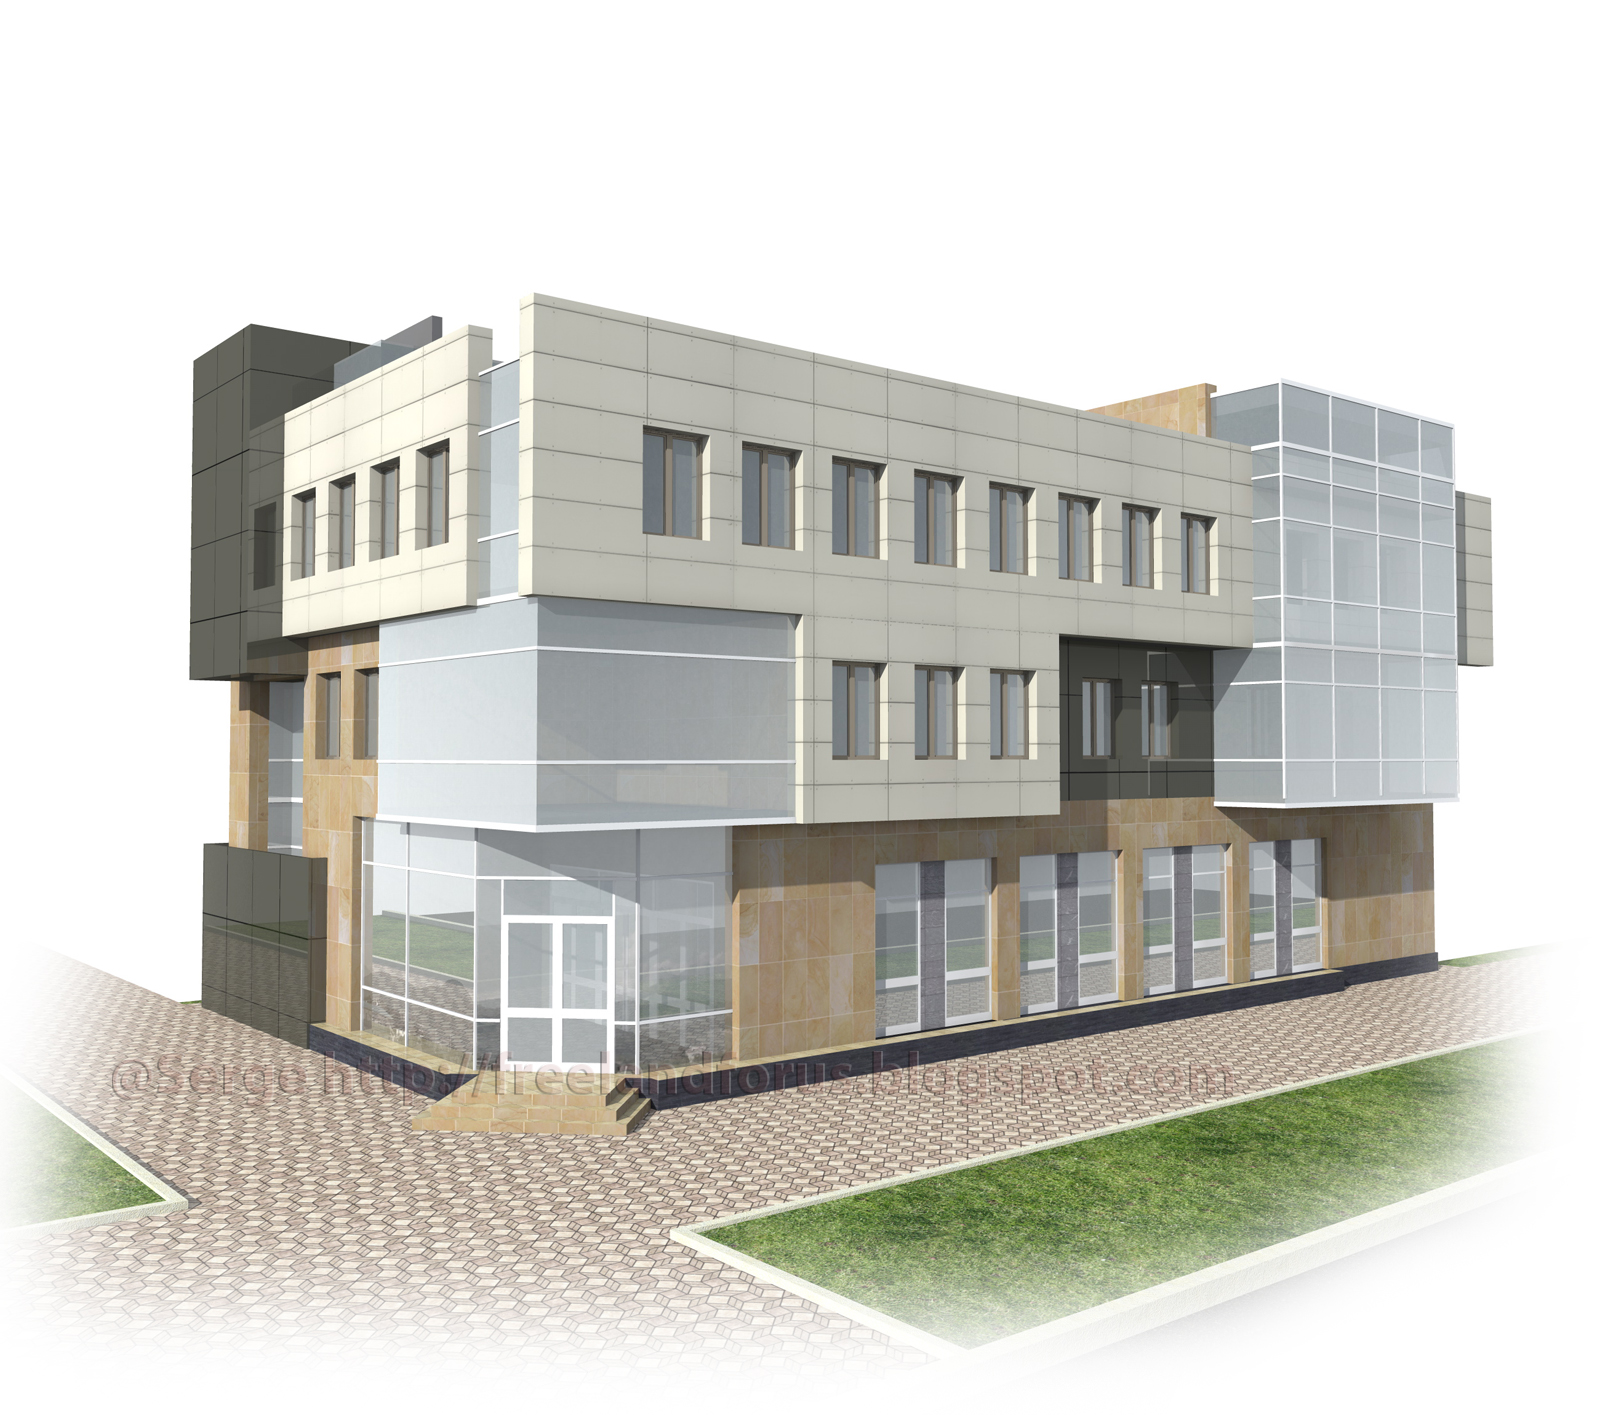 Mixed use retail and office building